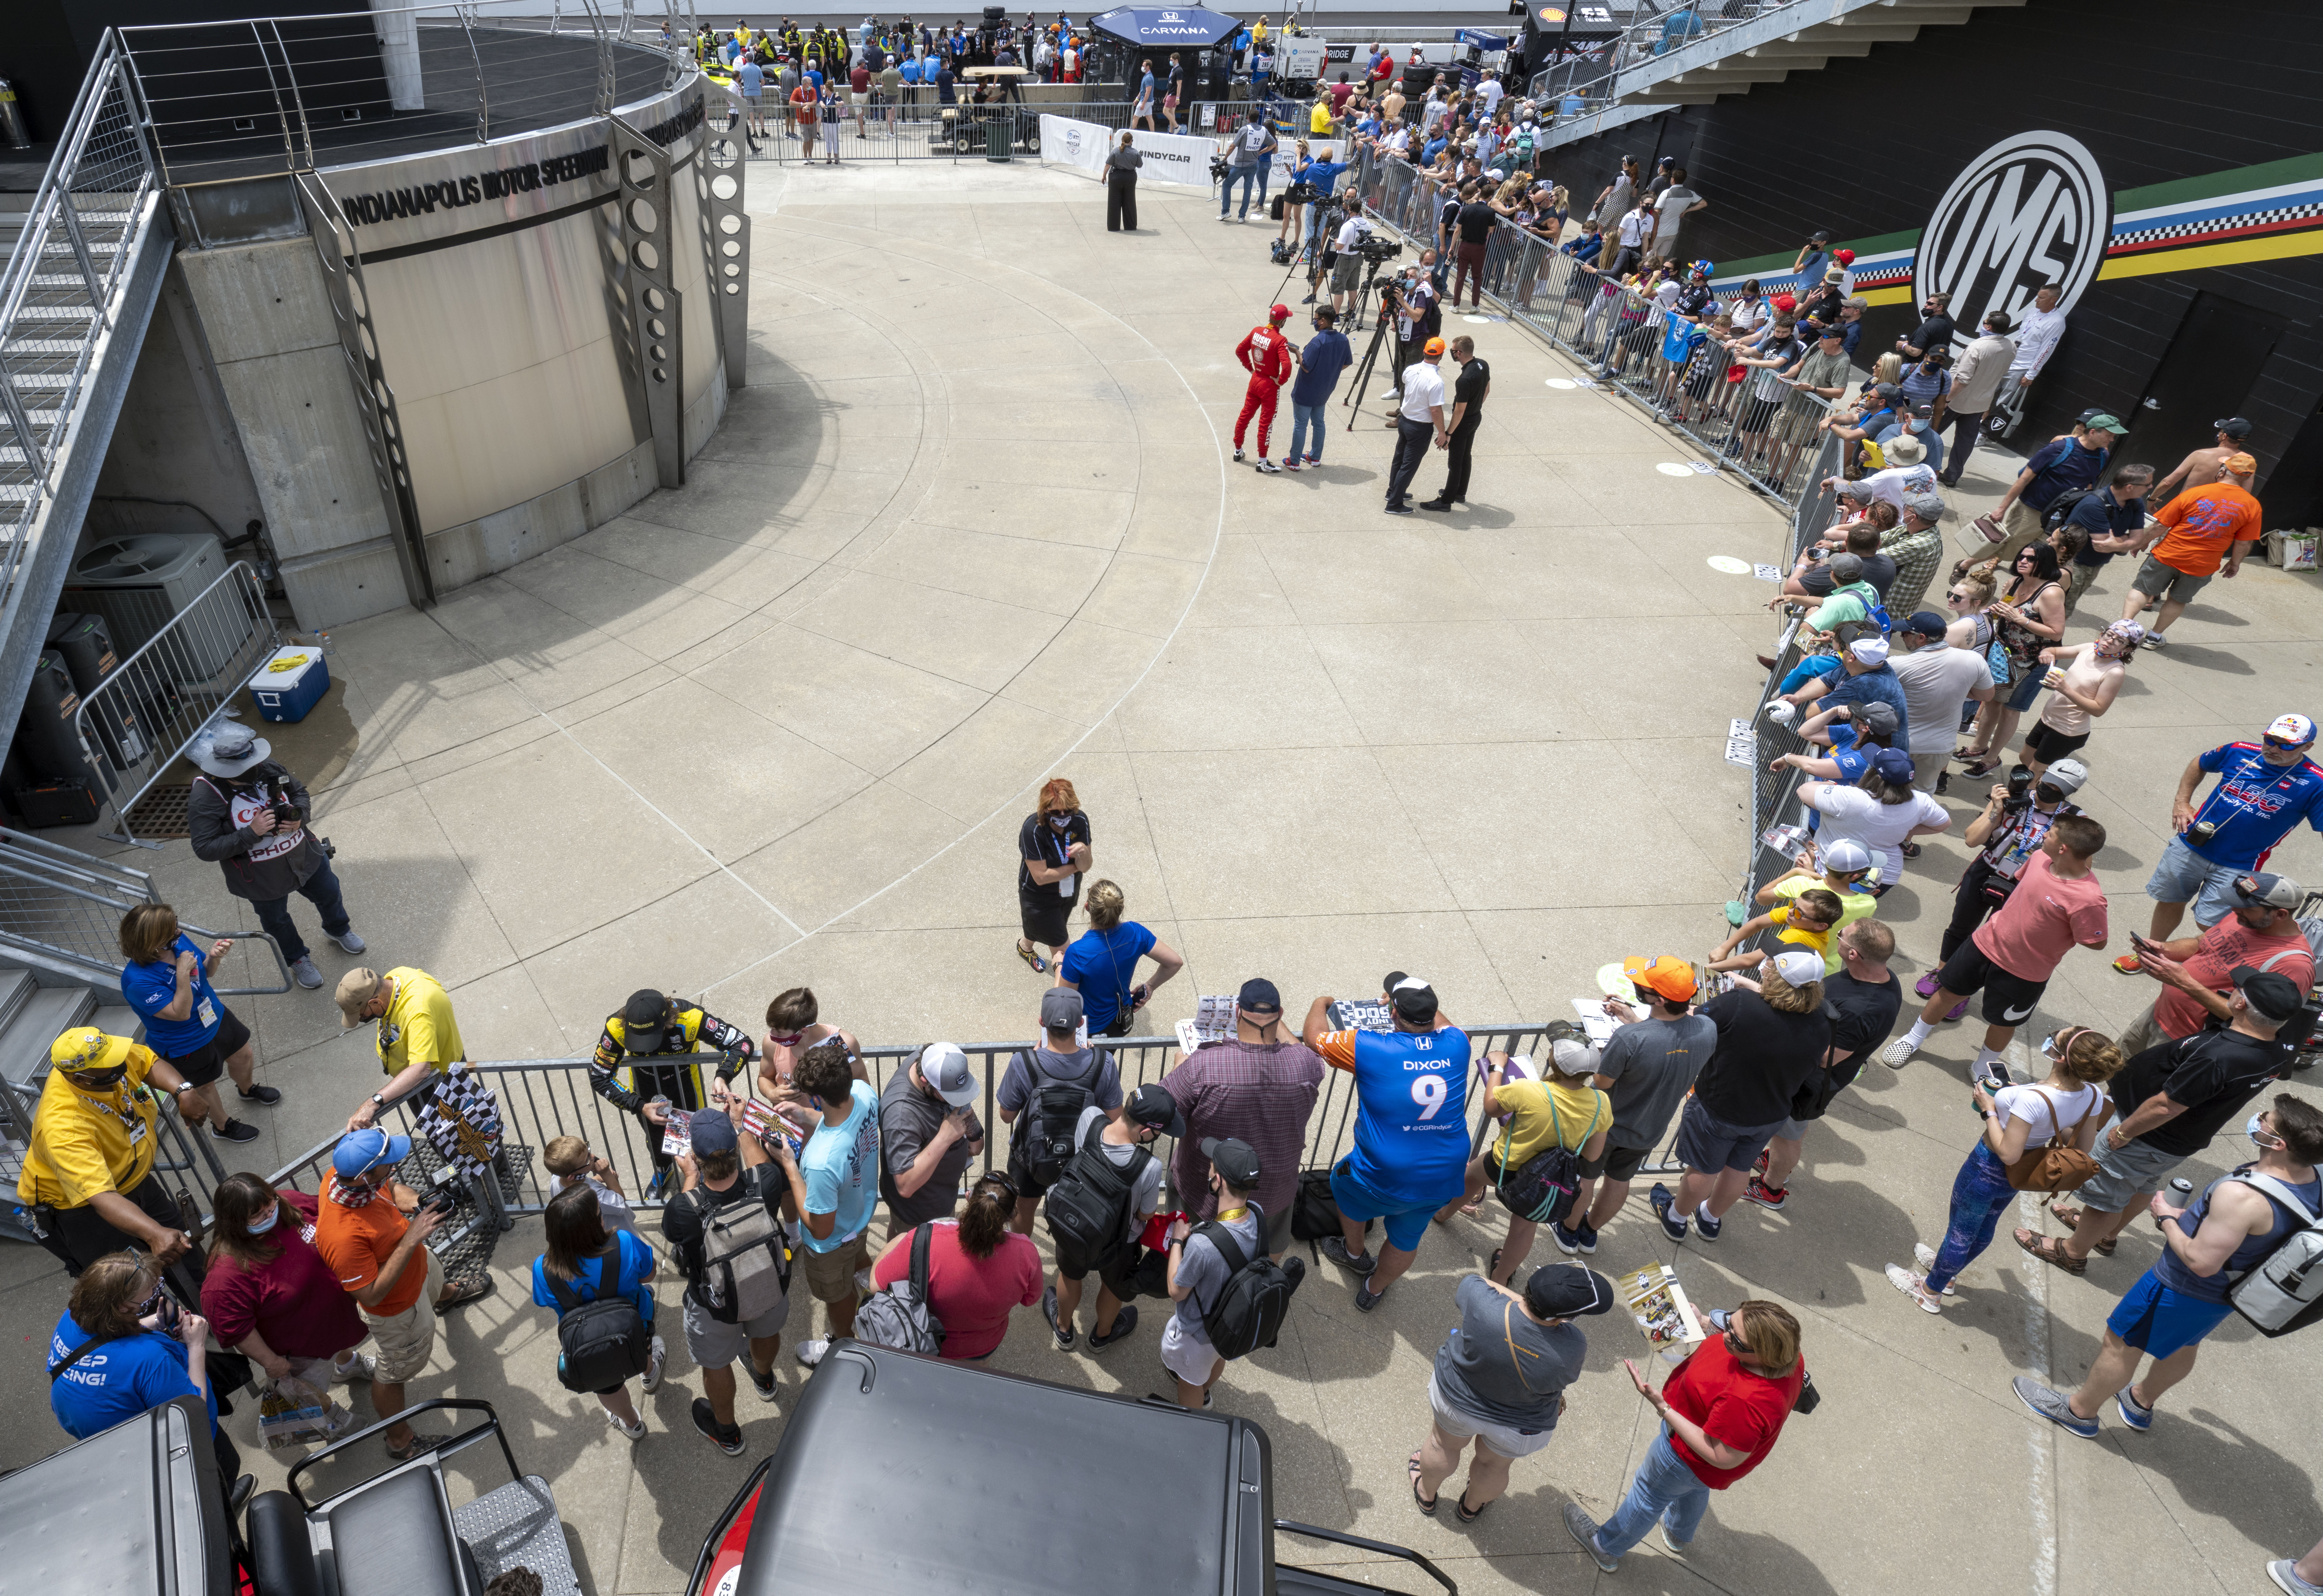 May 22, 2021; Indianapolis, IN, USA; A crowd forms waiting for an opportunity to see drivers give media interviews during the first day of qualifying for the 2021 Indianapolis 500 at the Indianapolis Motor Speedway. / Marc Lebryk-USA TODAY Sports/File Photo